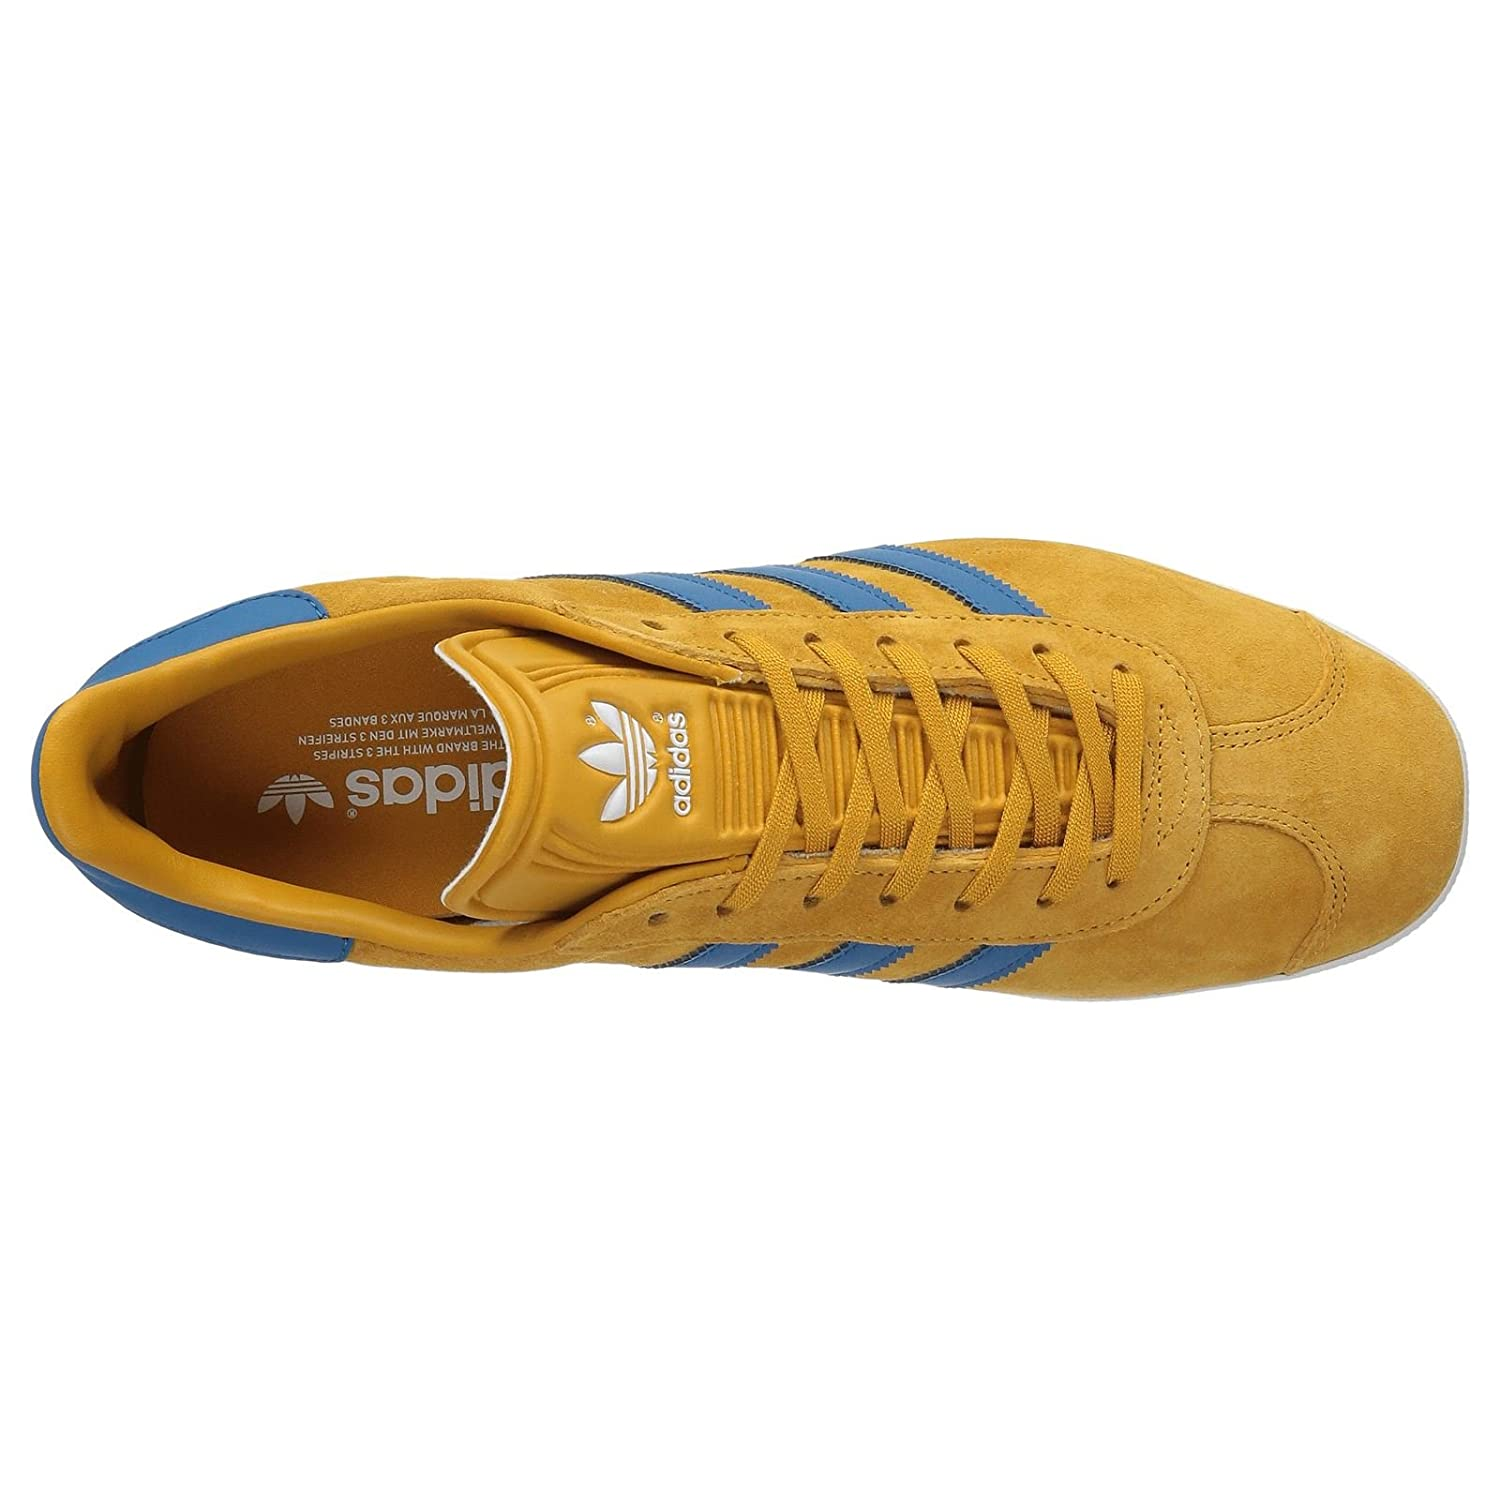 Mens Gazelle Core 40 Nomad Trainers Adidas Yellow Blue Suede